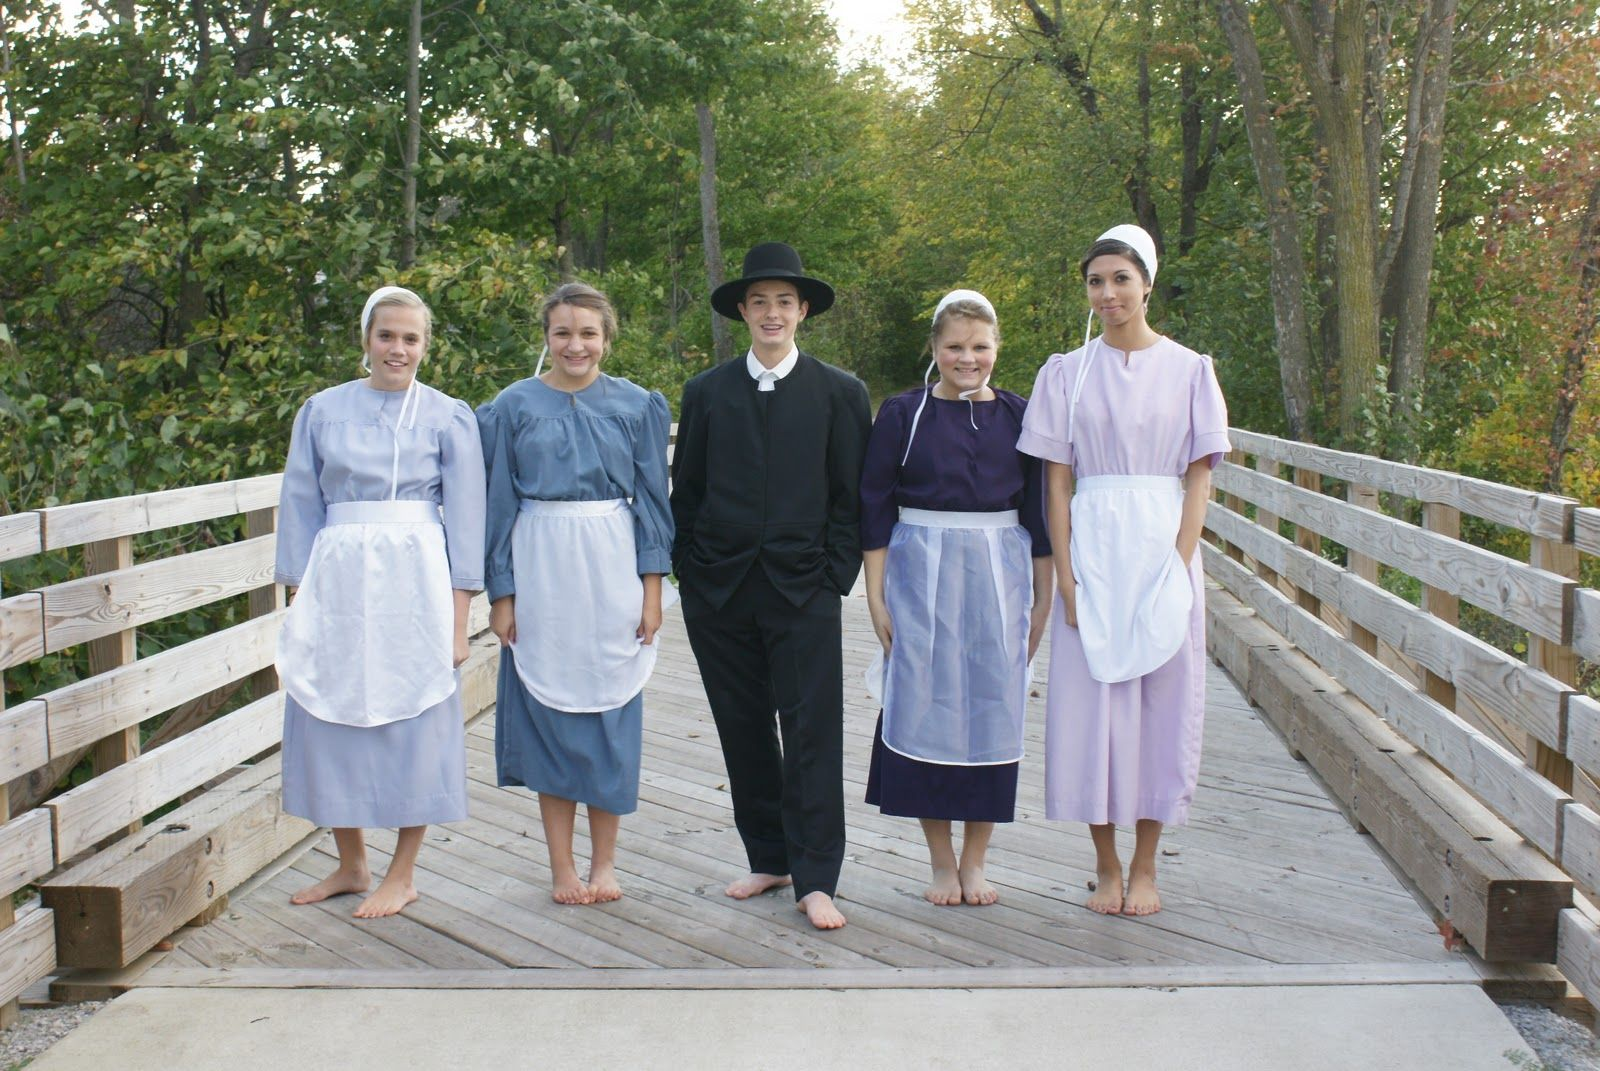 Amish Aprons With Images Amish Clothing Amish Amish Culture